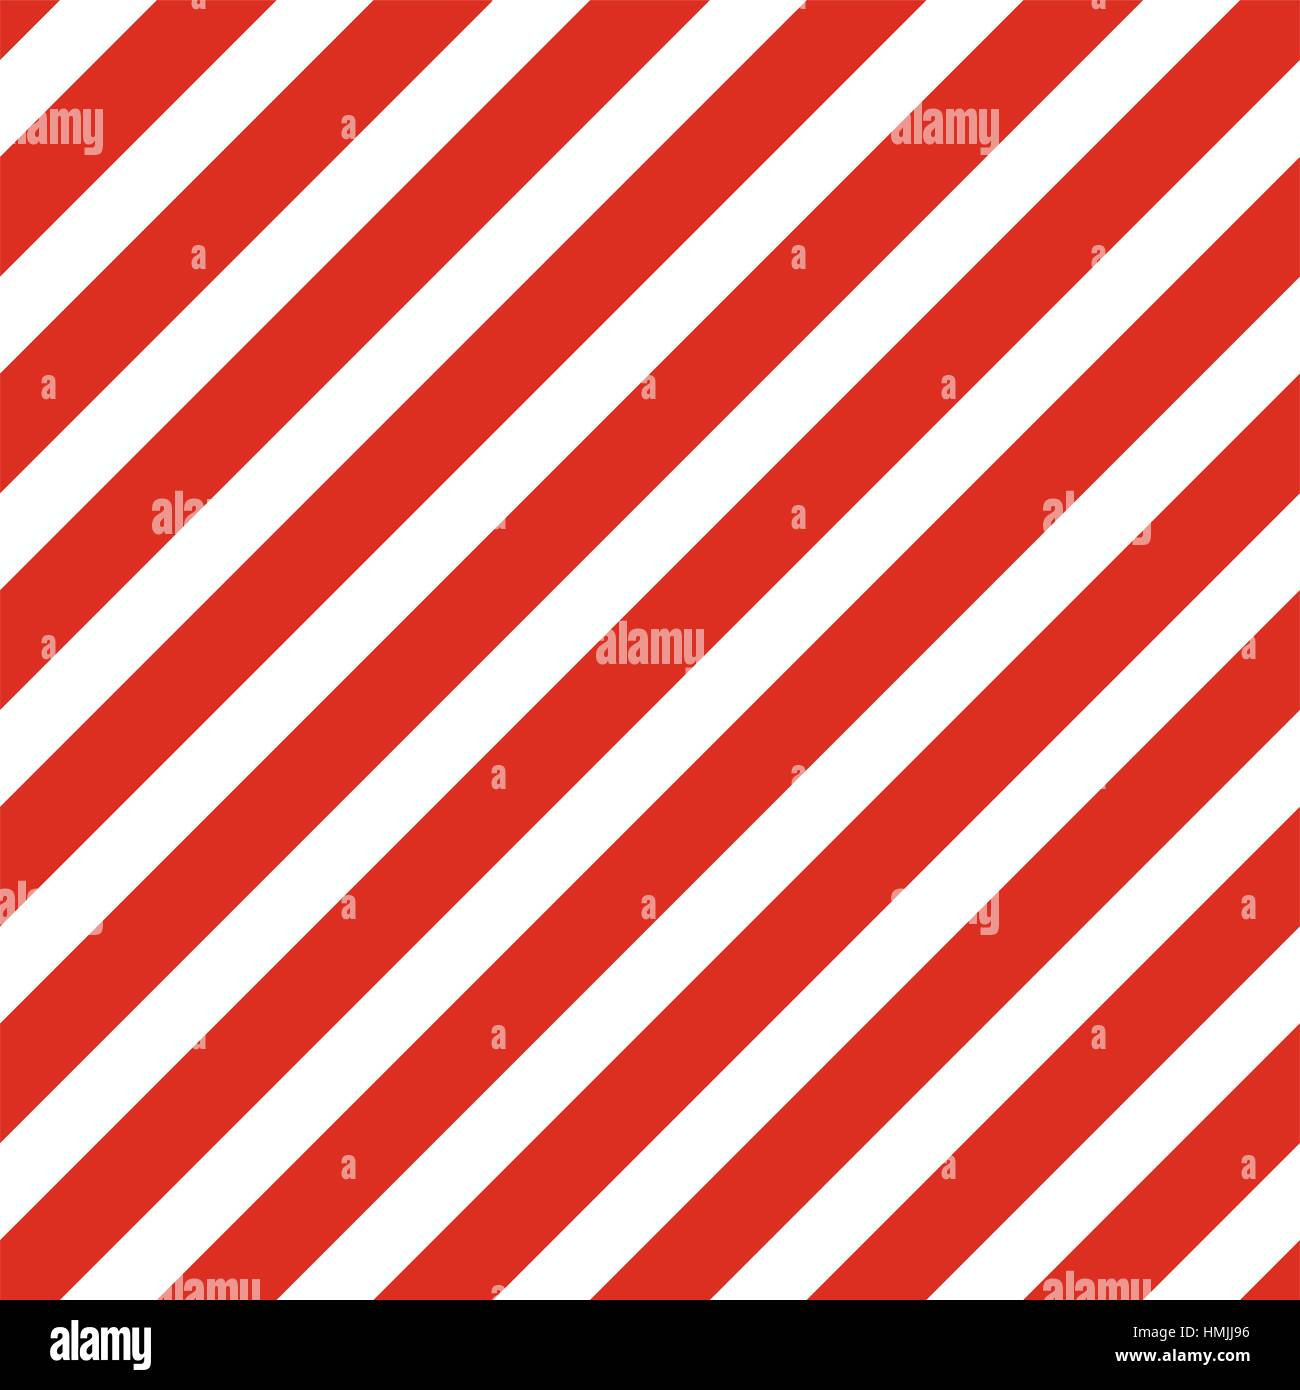 Patriotic usa seamless pattern american flag symbols and colors american flag symbols and colors background for 4th july usa independence day red and white diagonal stripes biocorpaavc Images